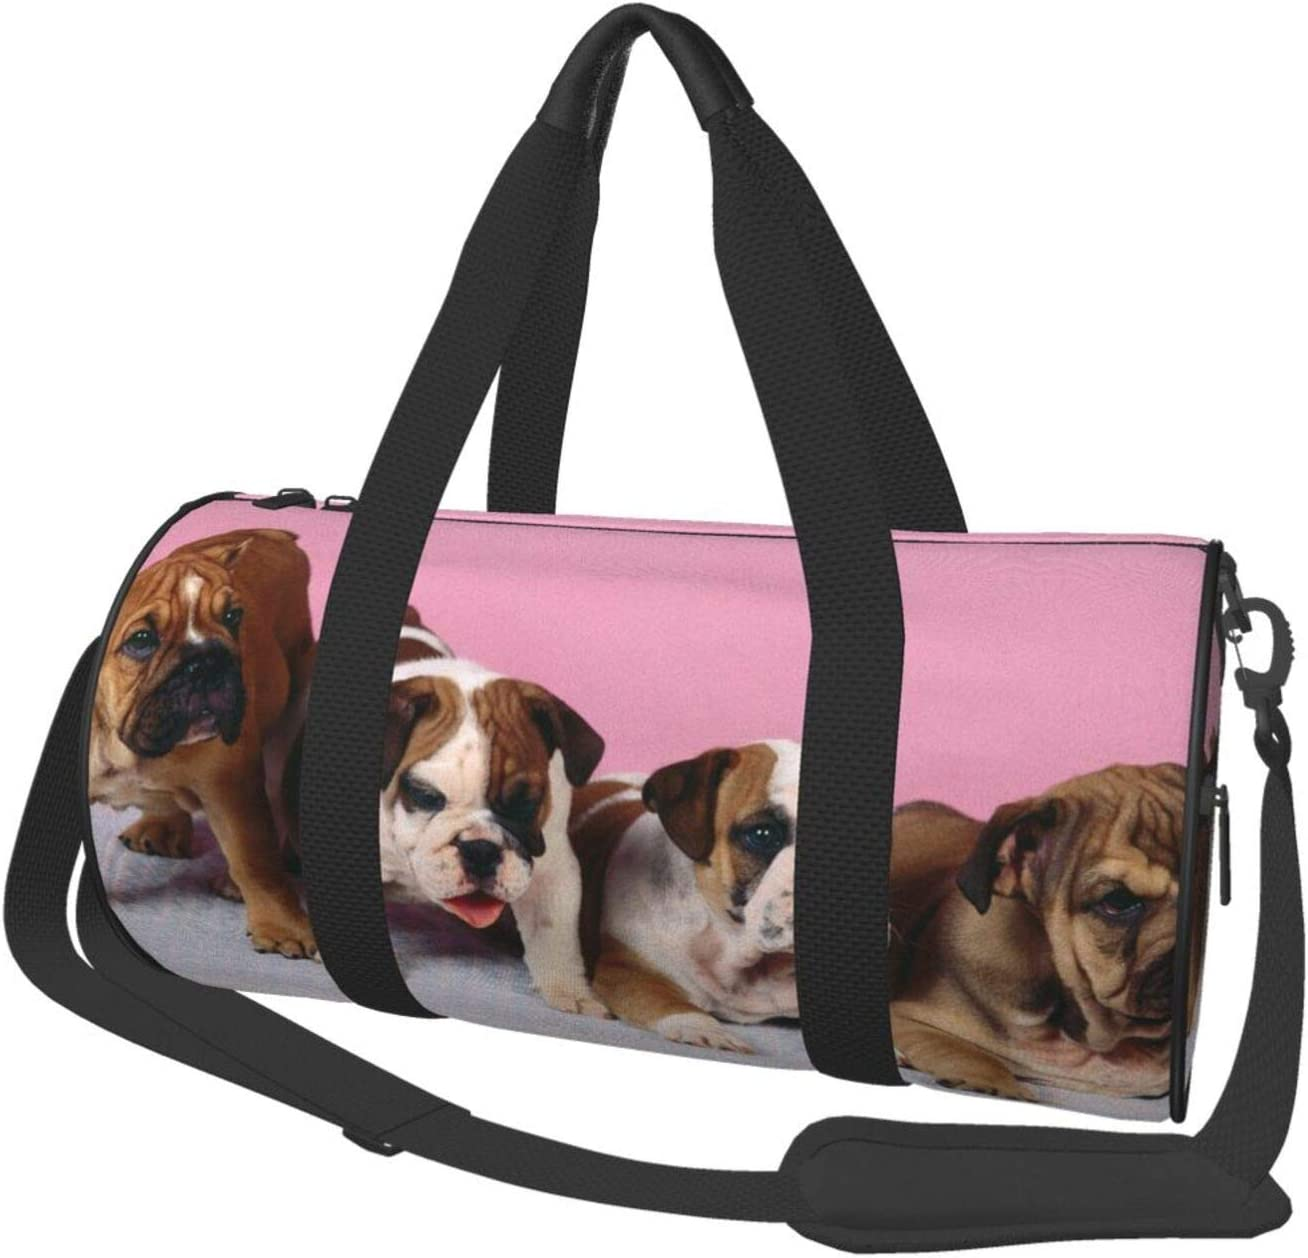 English Bulldogs Canvas Travel Duffel Sports F Gym Bag Cheap mail order specialty store Fashionable Tote